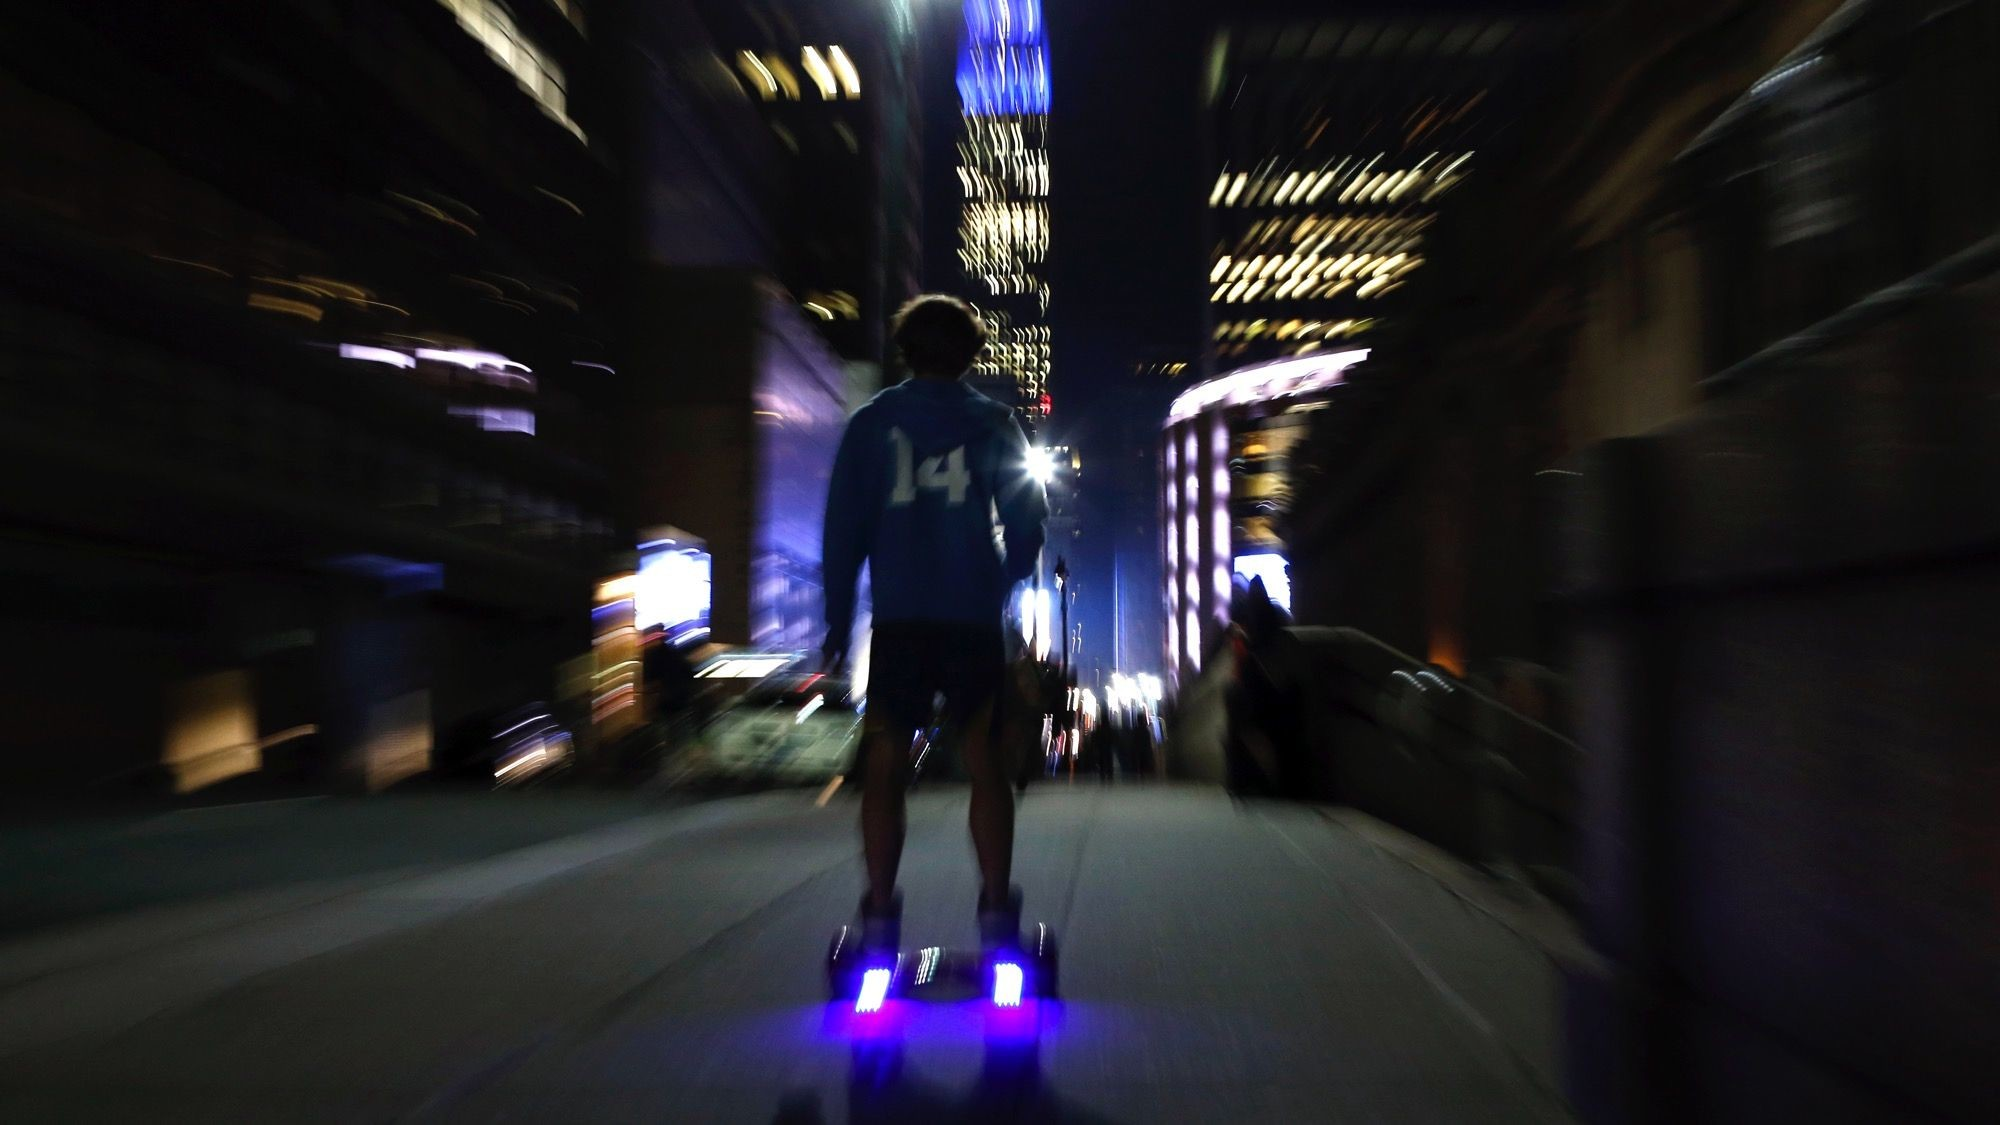 2000x1125 Hoverboards are over—and the industry only has itself to blame